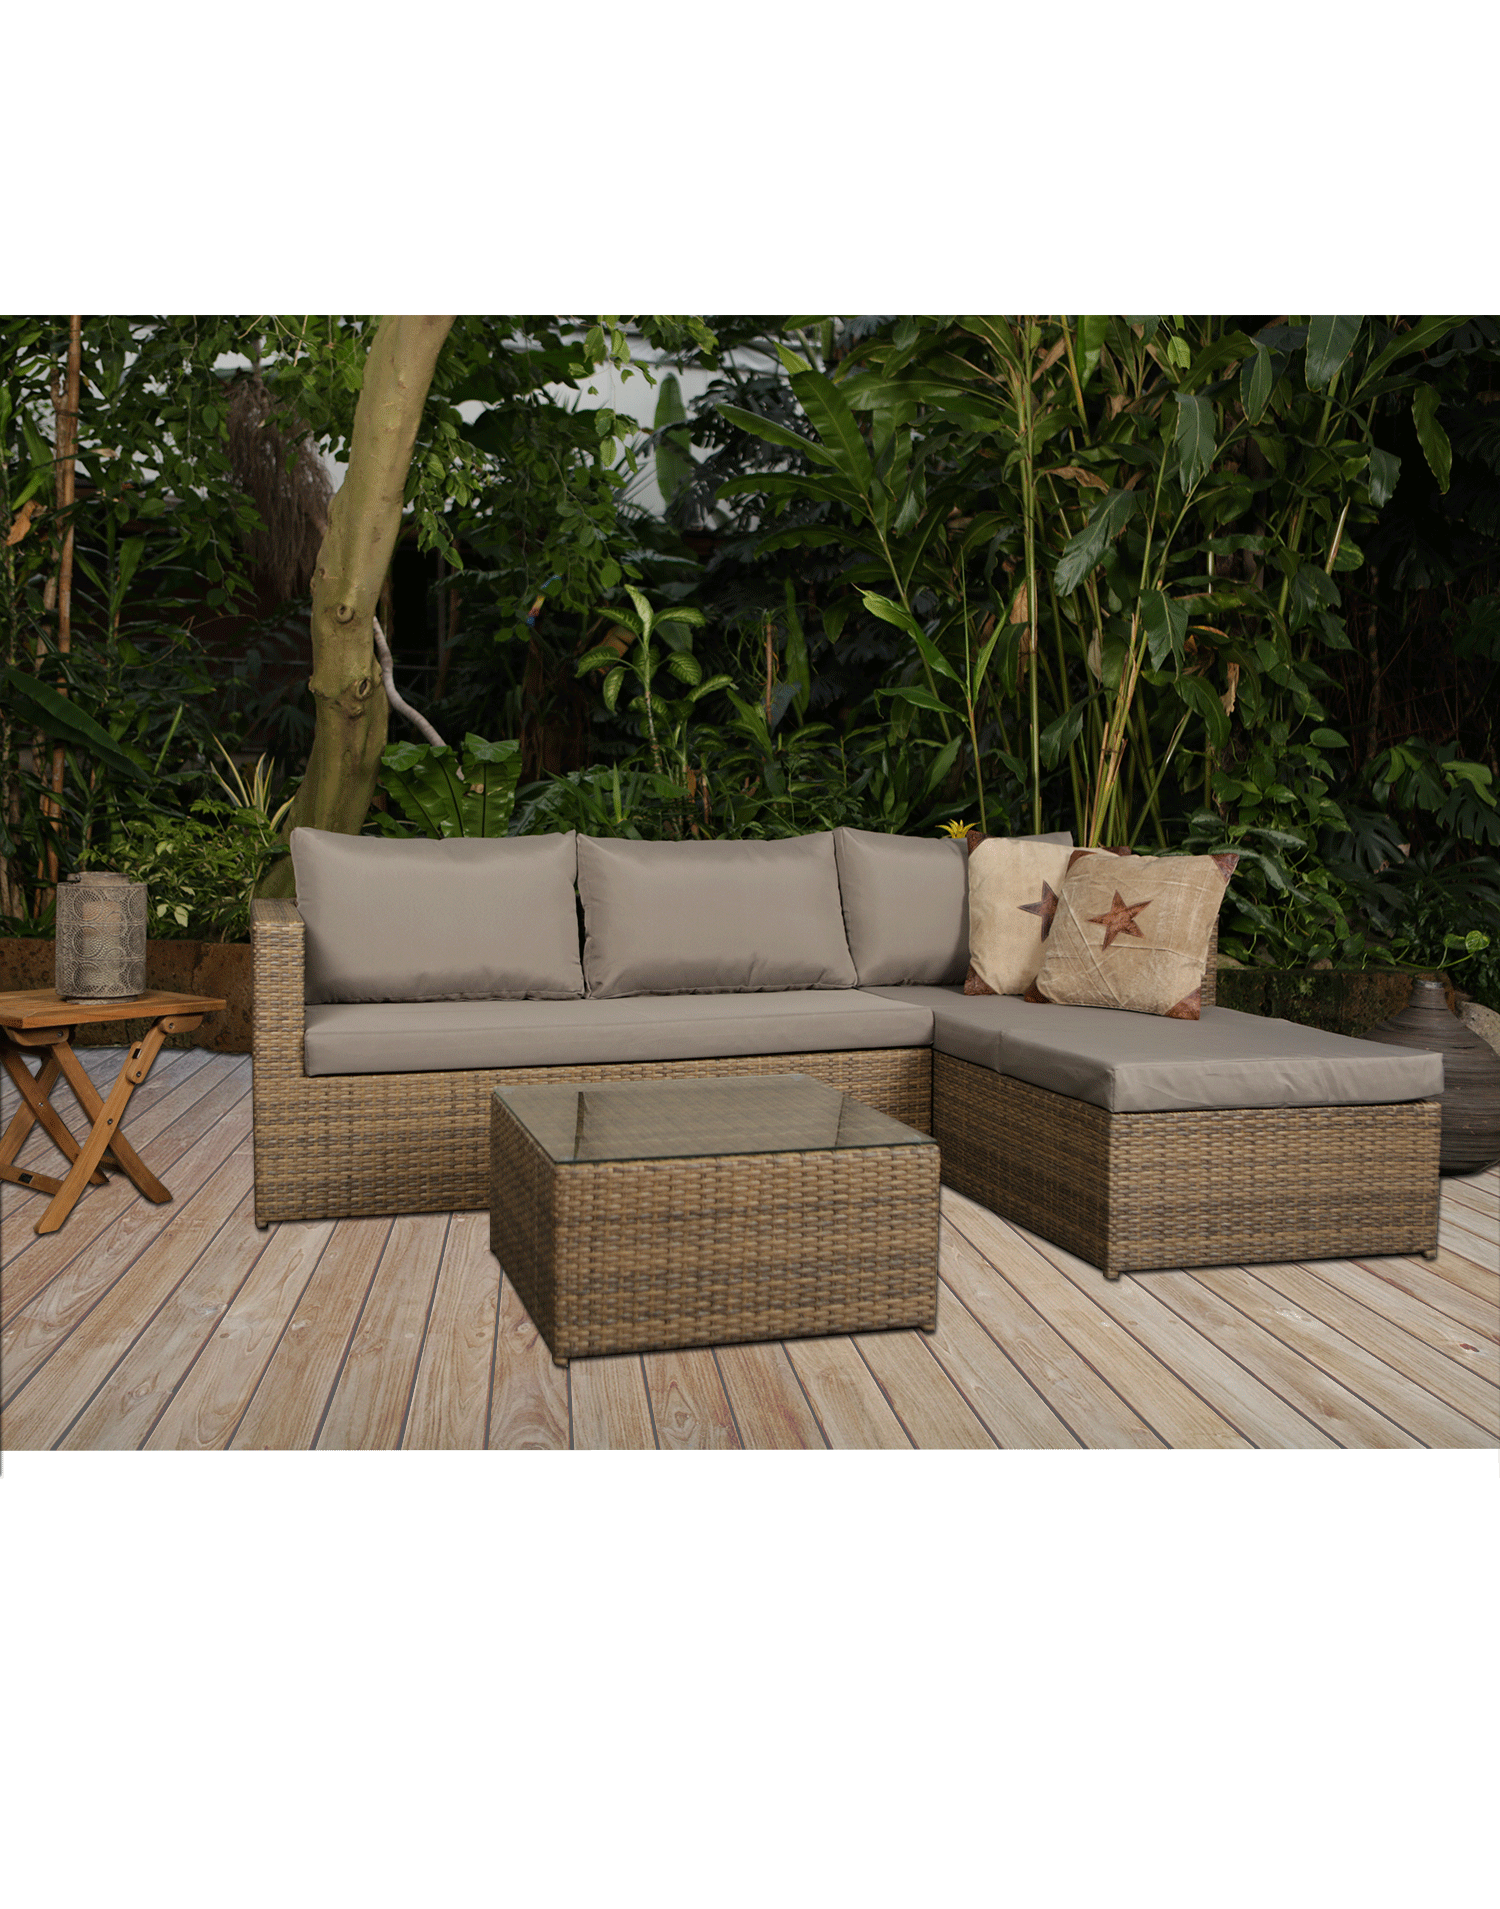 Beautiful Gartenmoebel Rattan Lounge Gallery - House Design Ideas ...